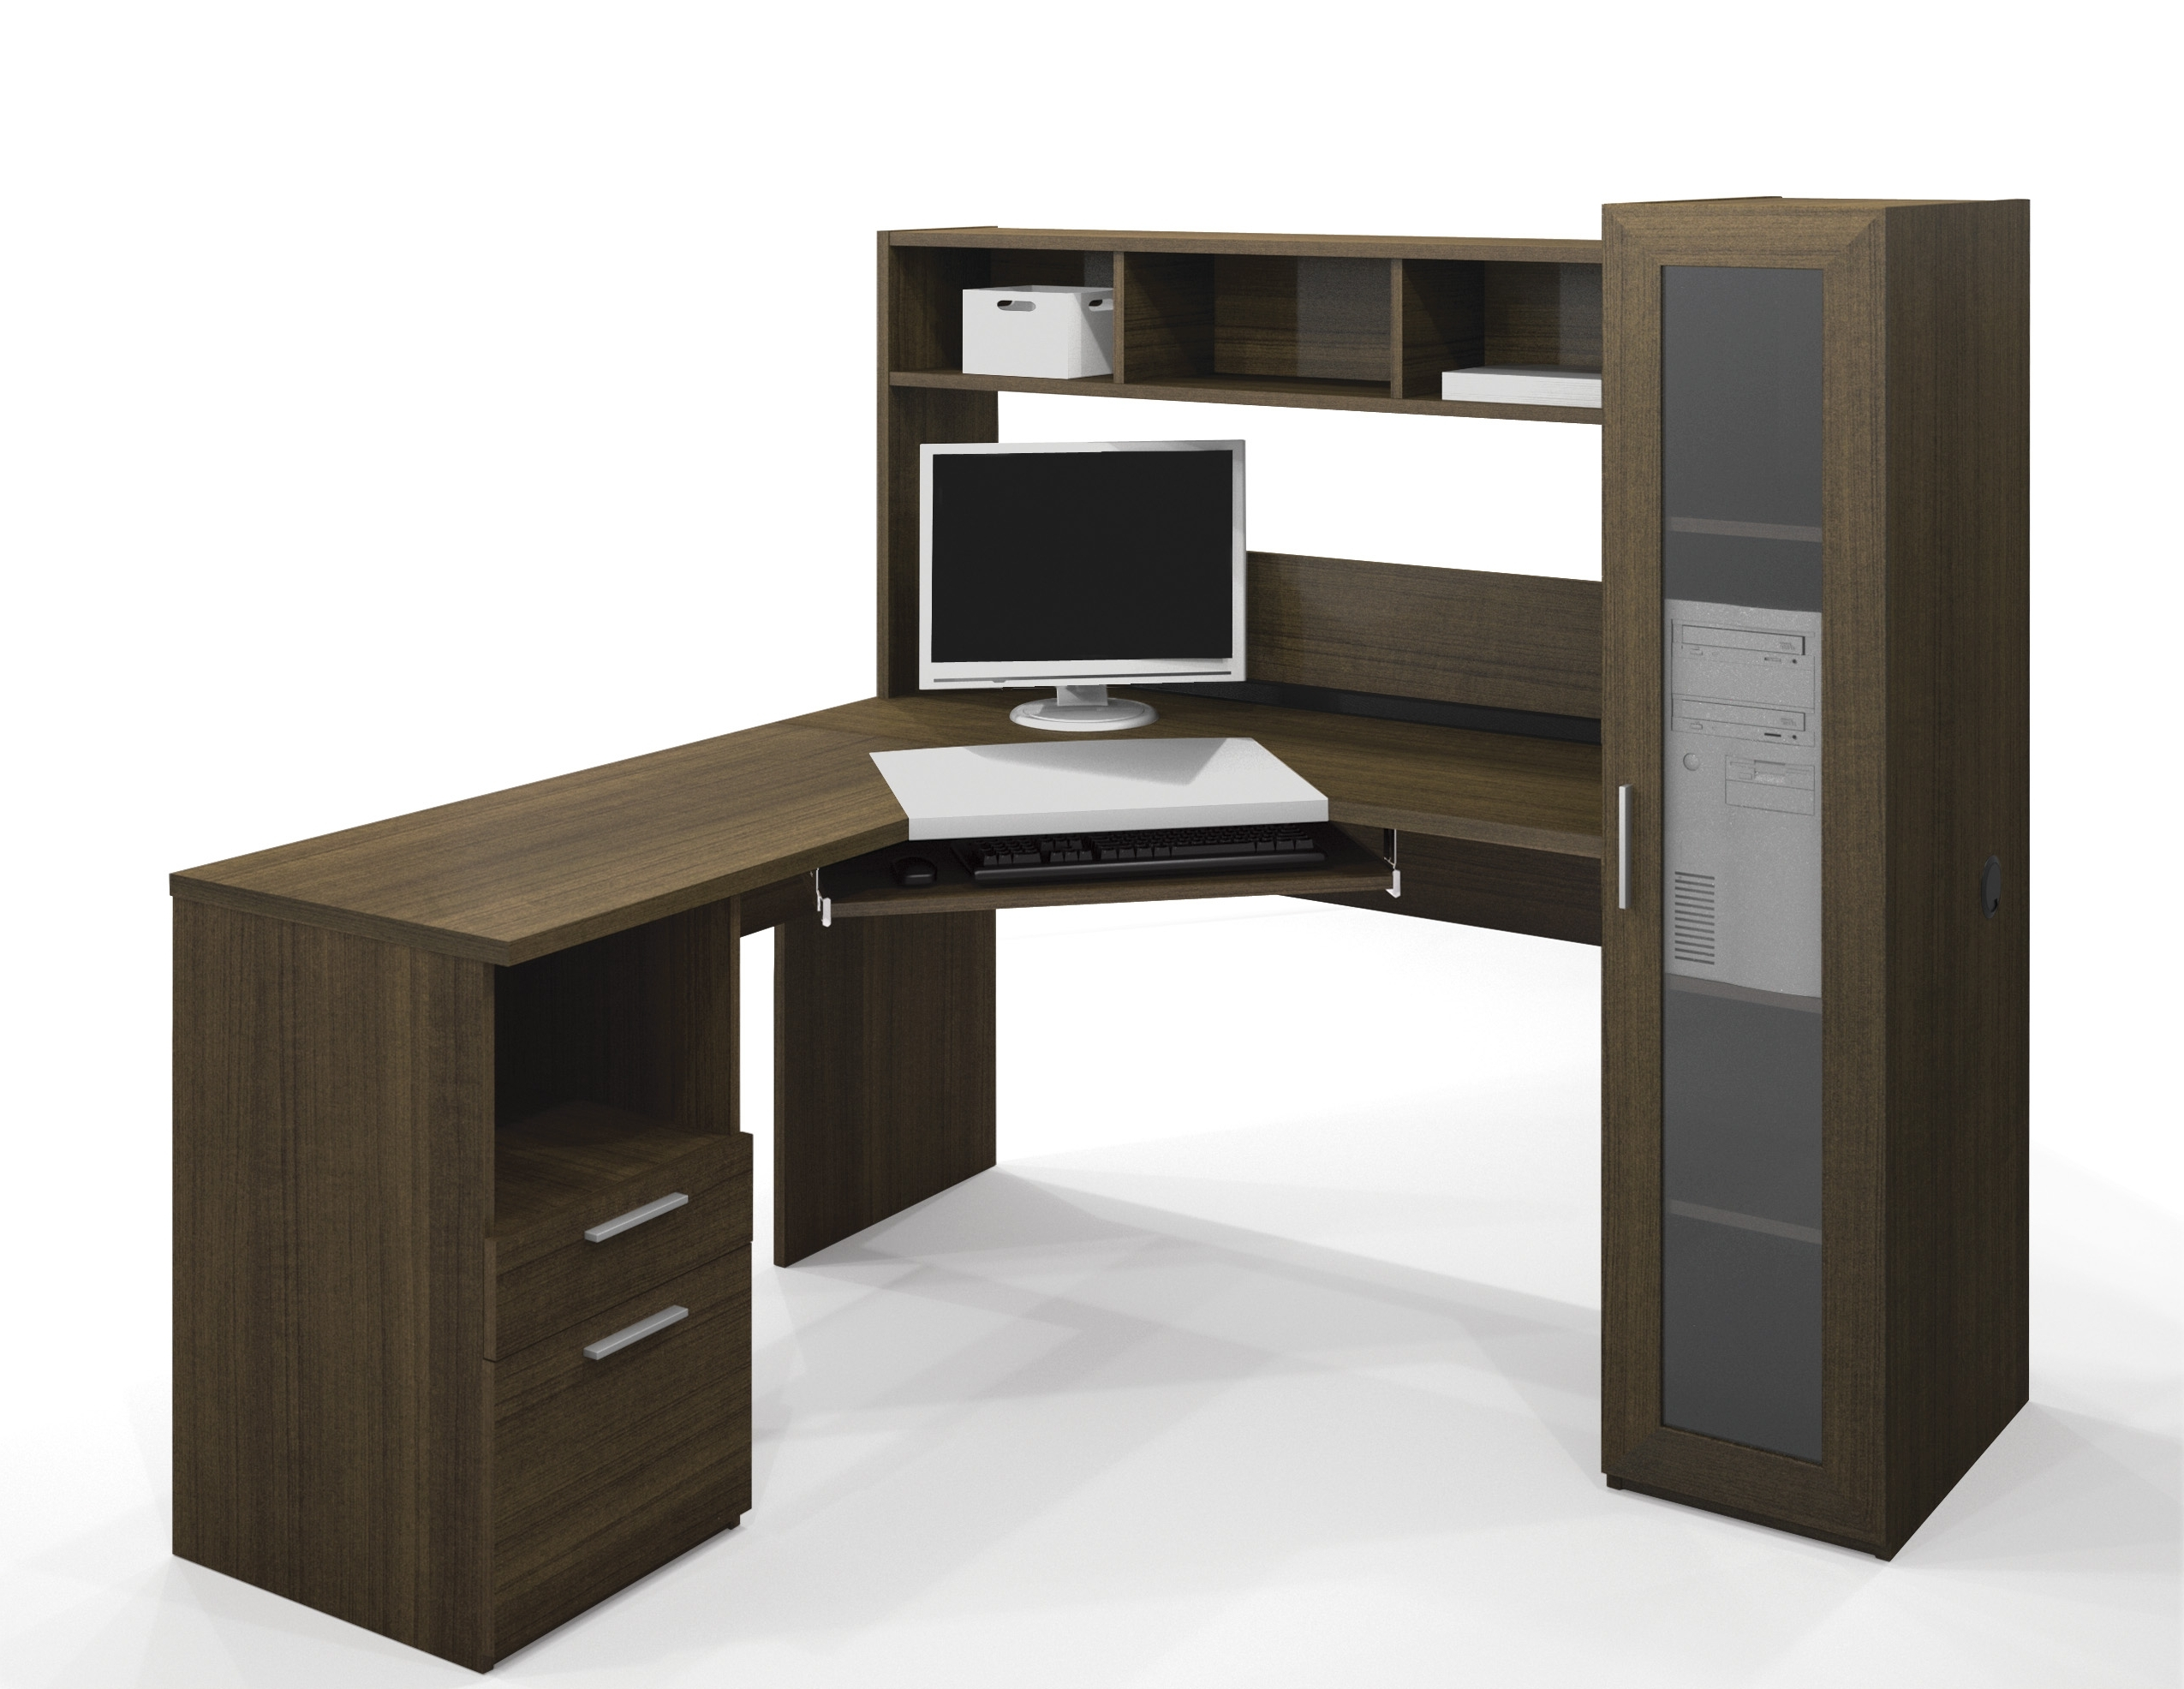 Computer Desks With Shelves Pertaining To Well Liked Furniture : Black Corner Desk With Shelves Home Desk Furniture (View 6 of 20)